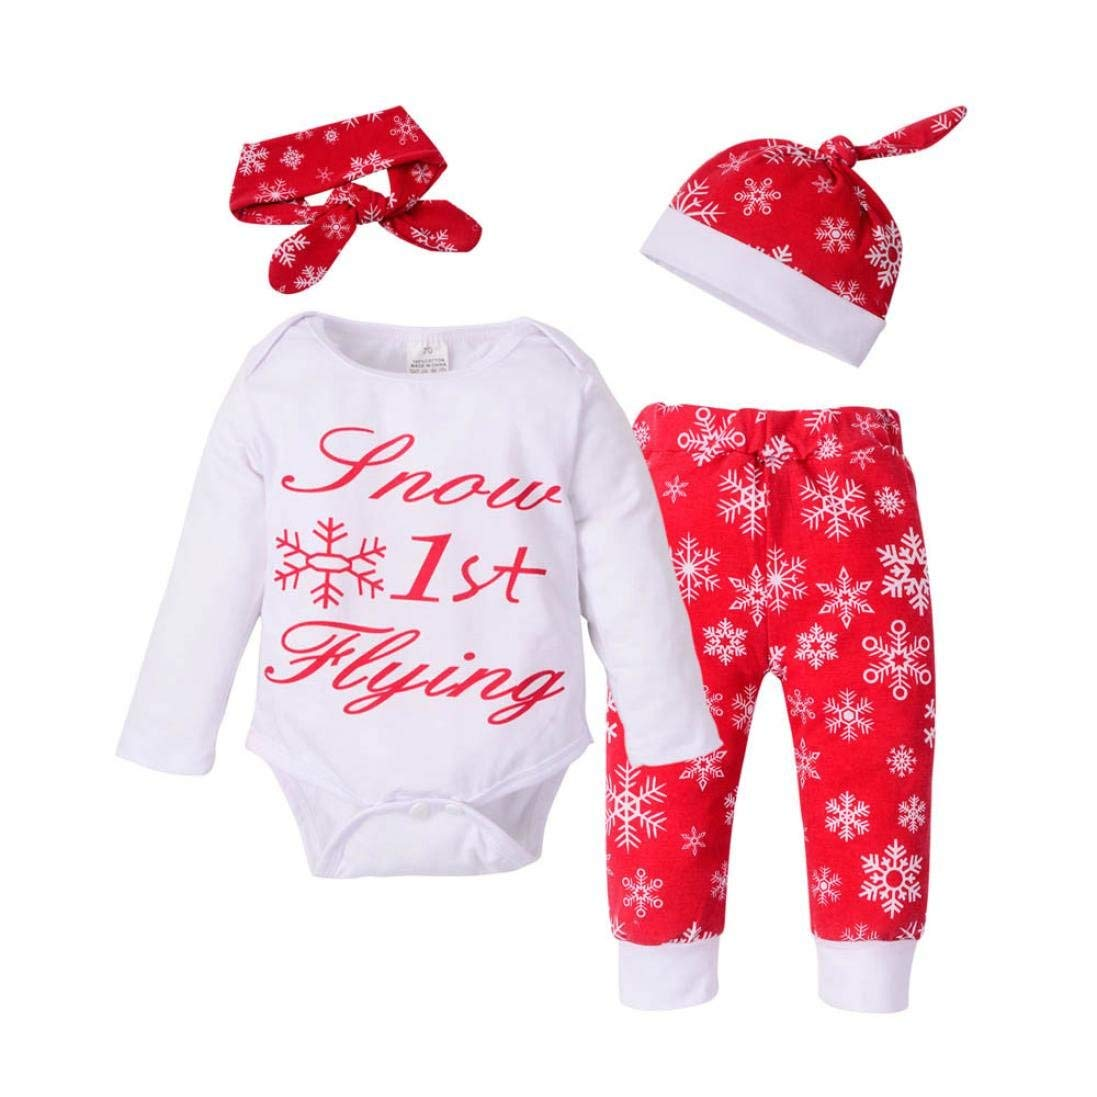 d4579717f Get Quotations · Baby Outfits,oldeagle Newborn Baby Girls Boys Christmas Outfits  Clothes Romper+Pants+Hat